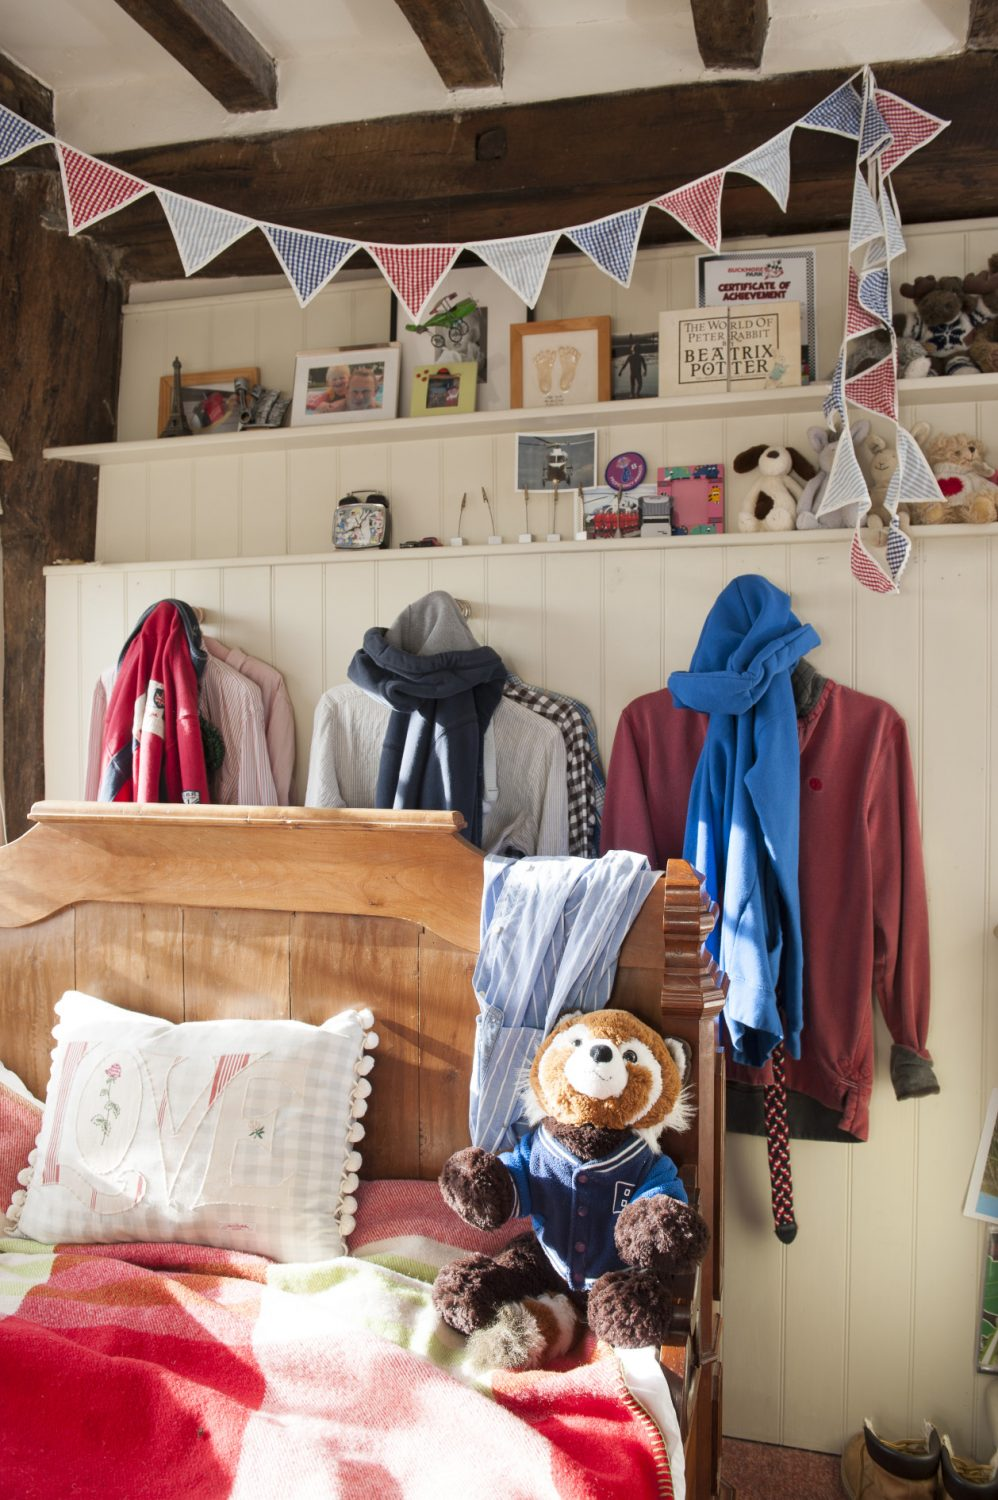 The kids' rooms are cosy and fun